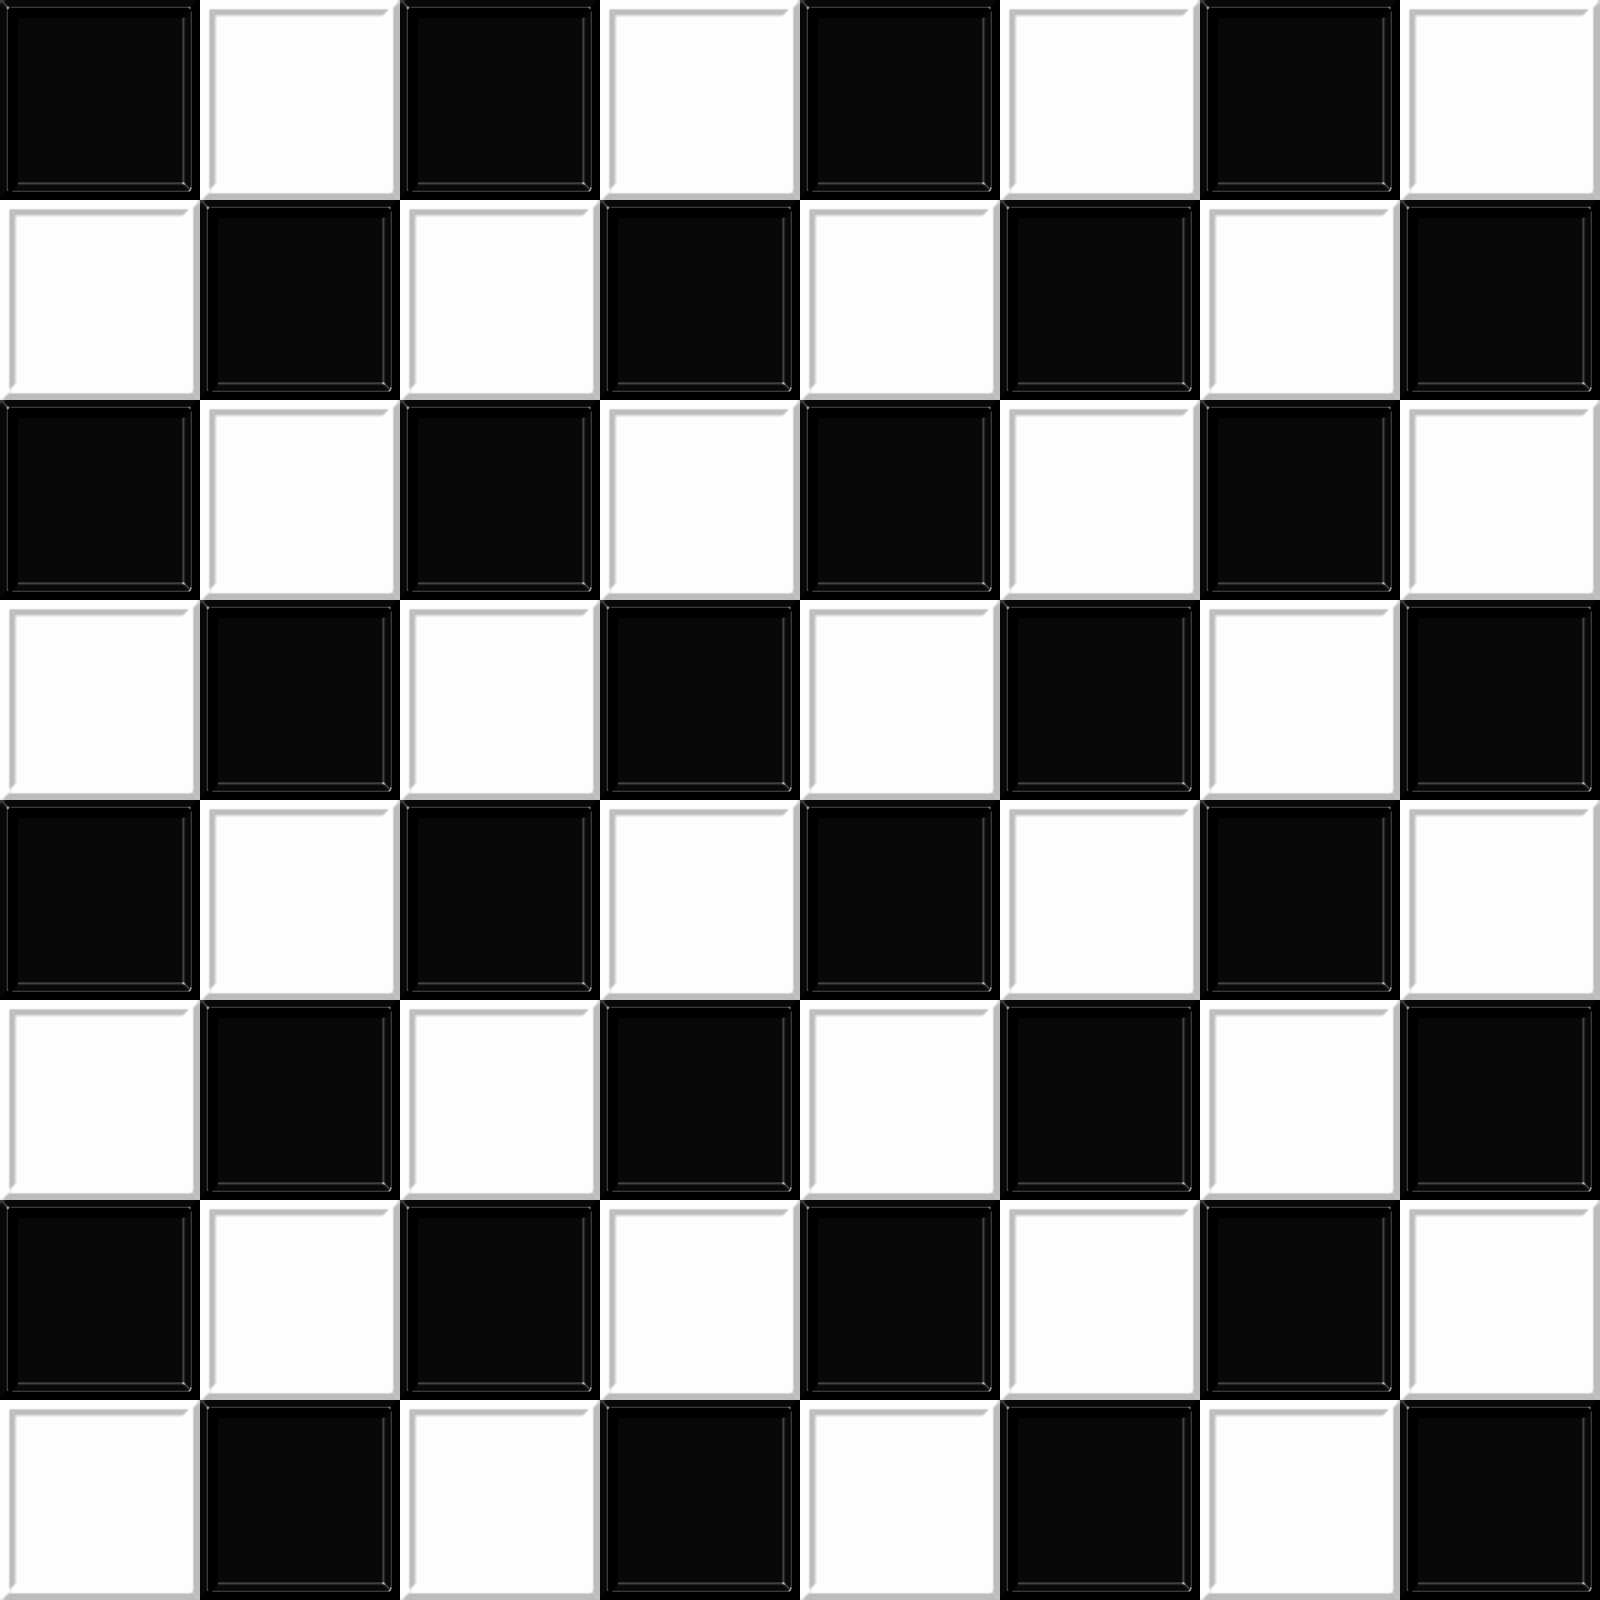 Pictures Of A Checker Board Awesome Black and White Checkerboard Wallpaper Wallpapersafari